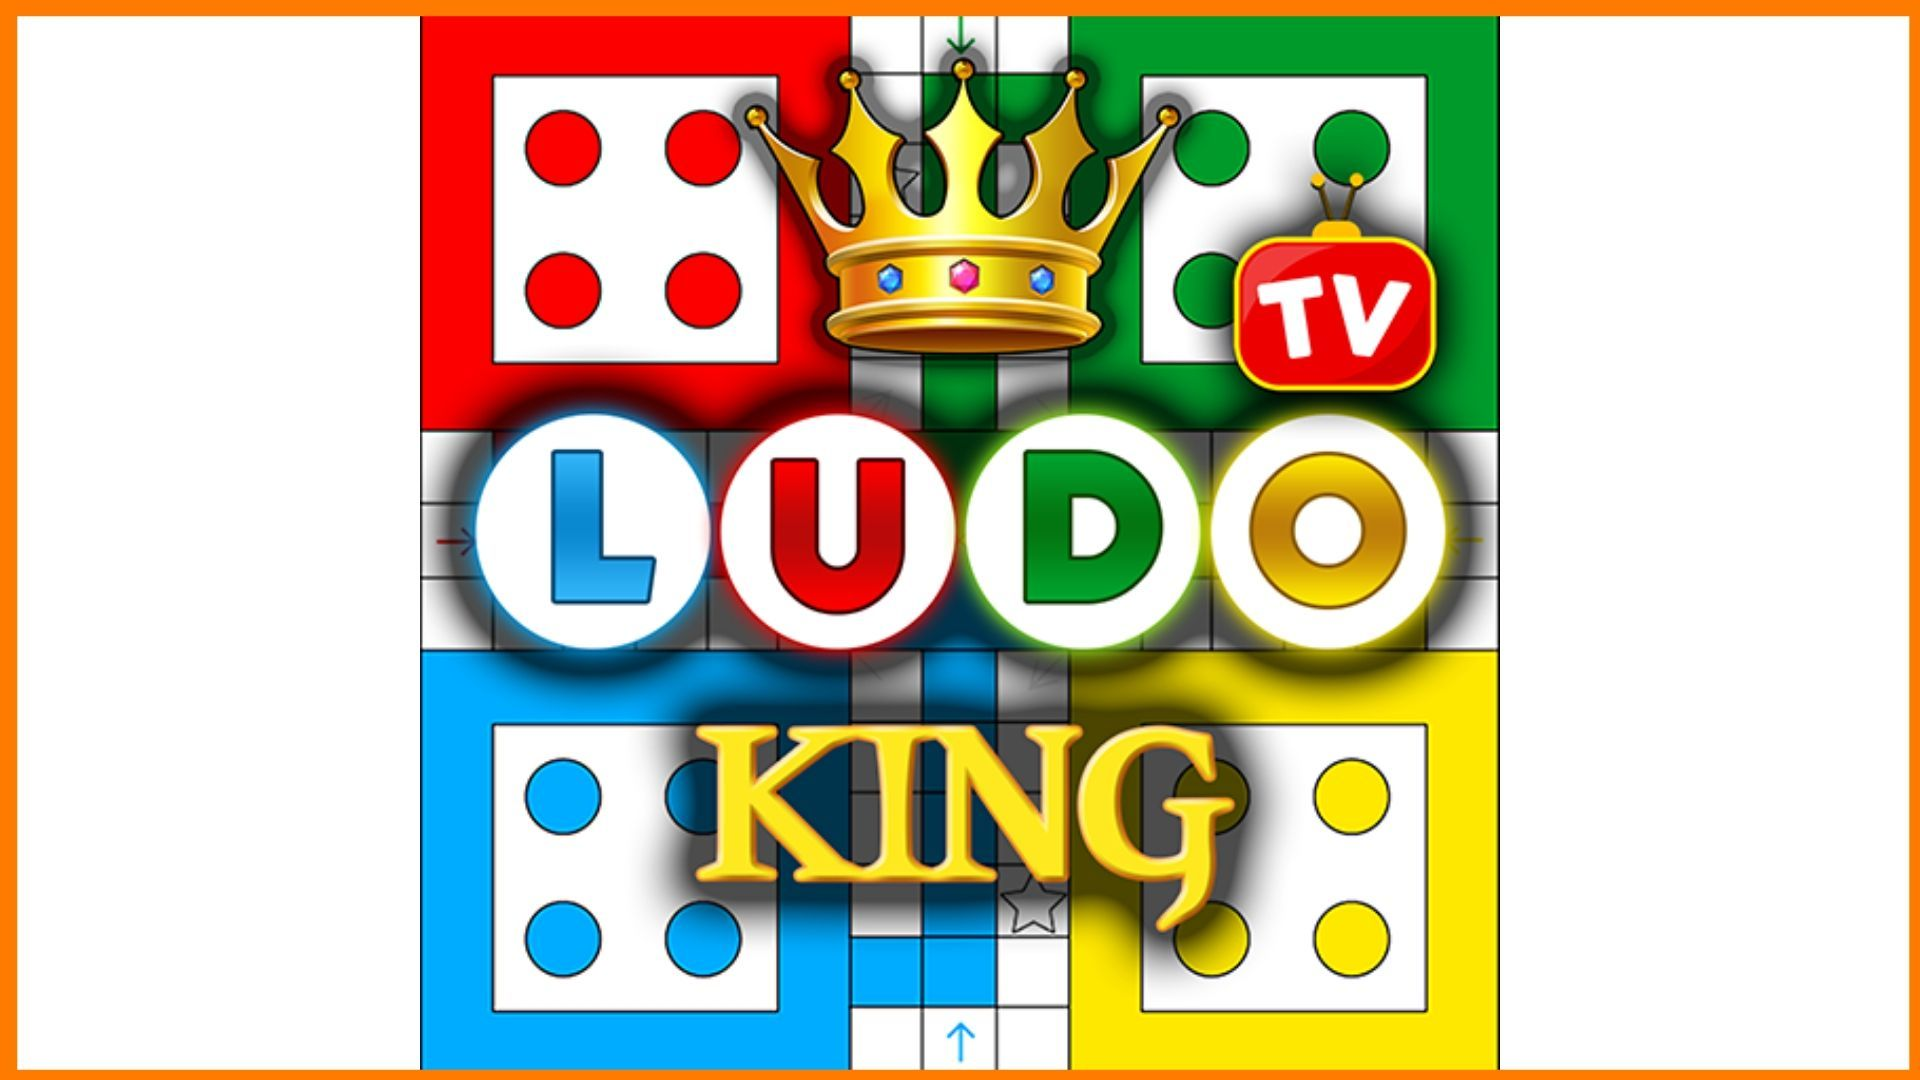 Ludo king- Gaming Platform